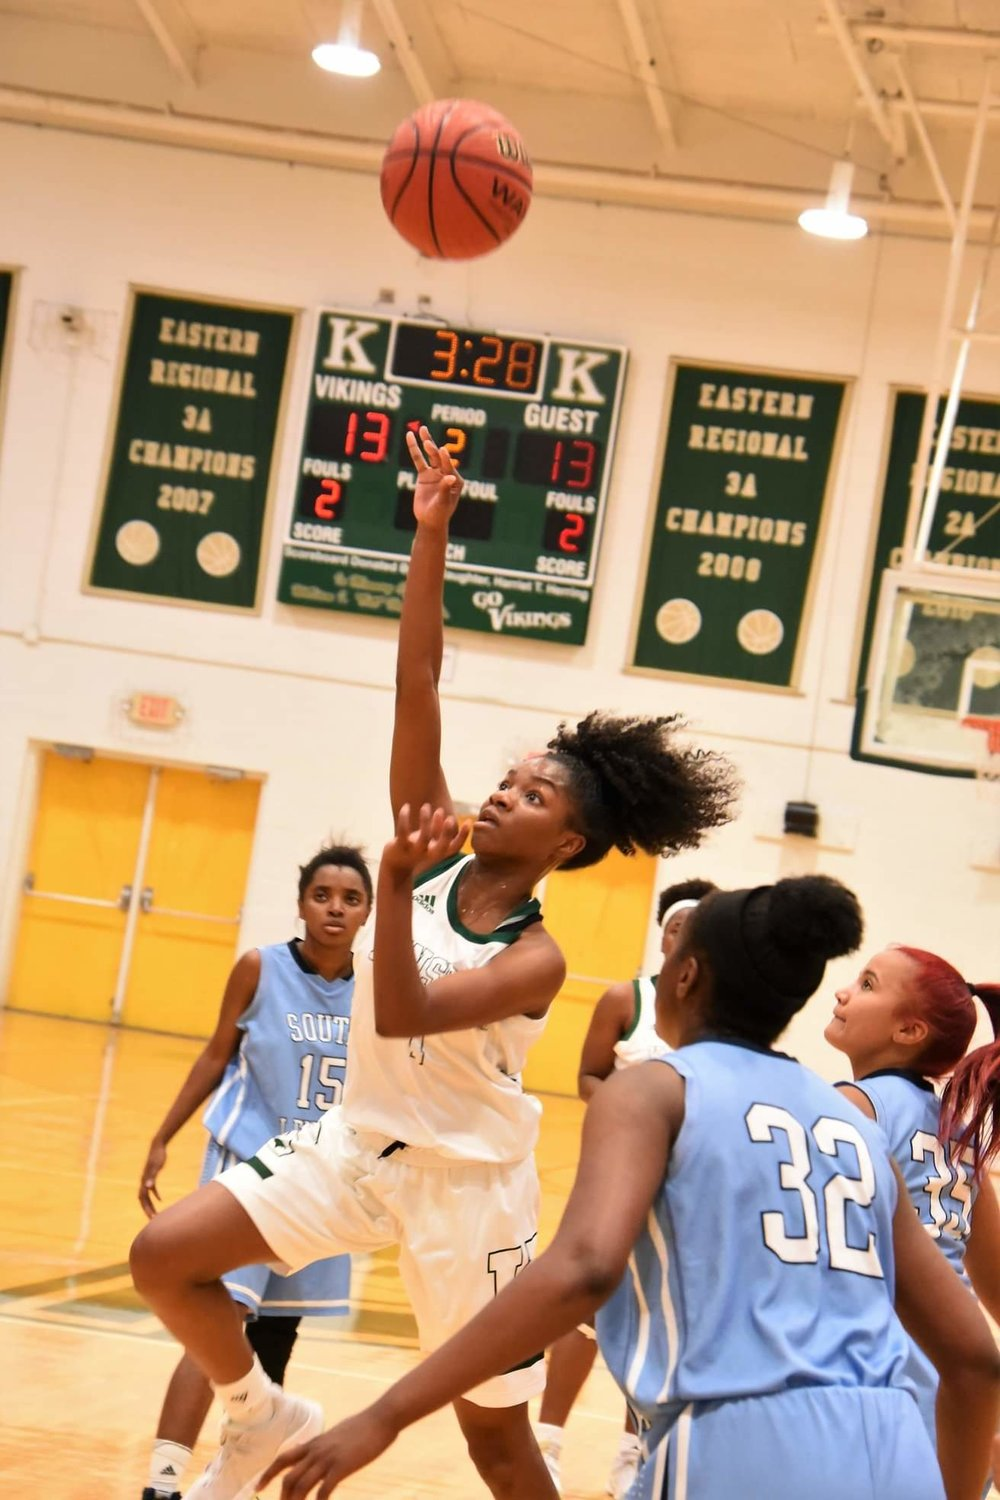 """Kinston's Lesley Sutton throws up a floater through the heart of the South Lenoir defense in Monday's game. Photo by William """"Bud"""" Hardy / Neuse News"""